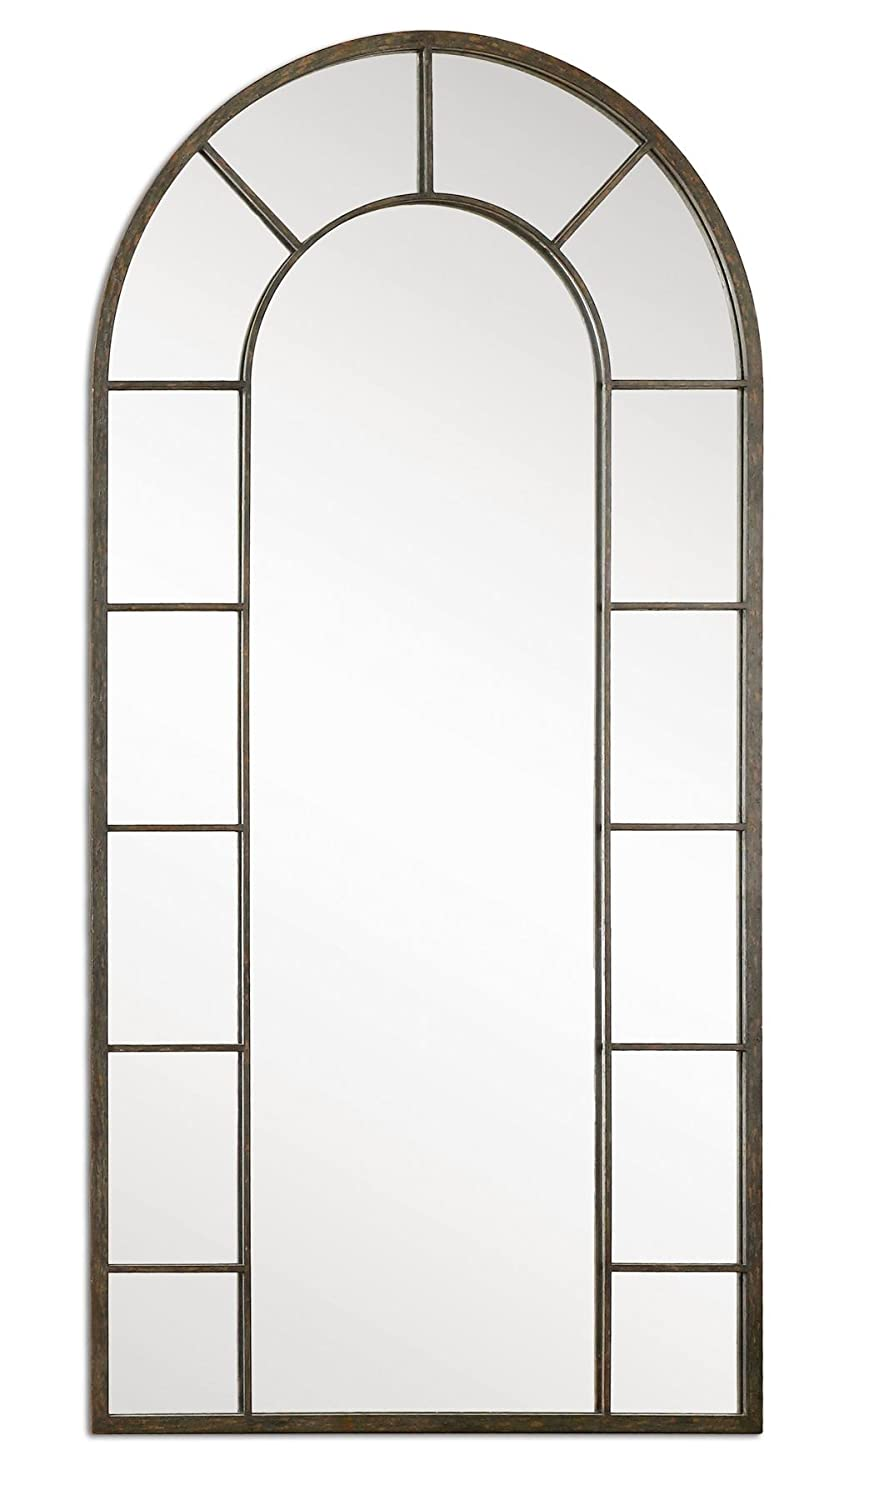 ballard beautiful home mirrors queen decor window arched decorate tall floors in barn pane framed arc mirror floor large the pottery house ikea affordable